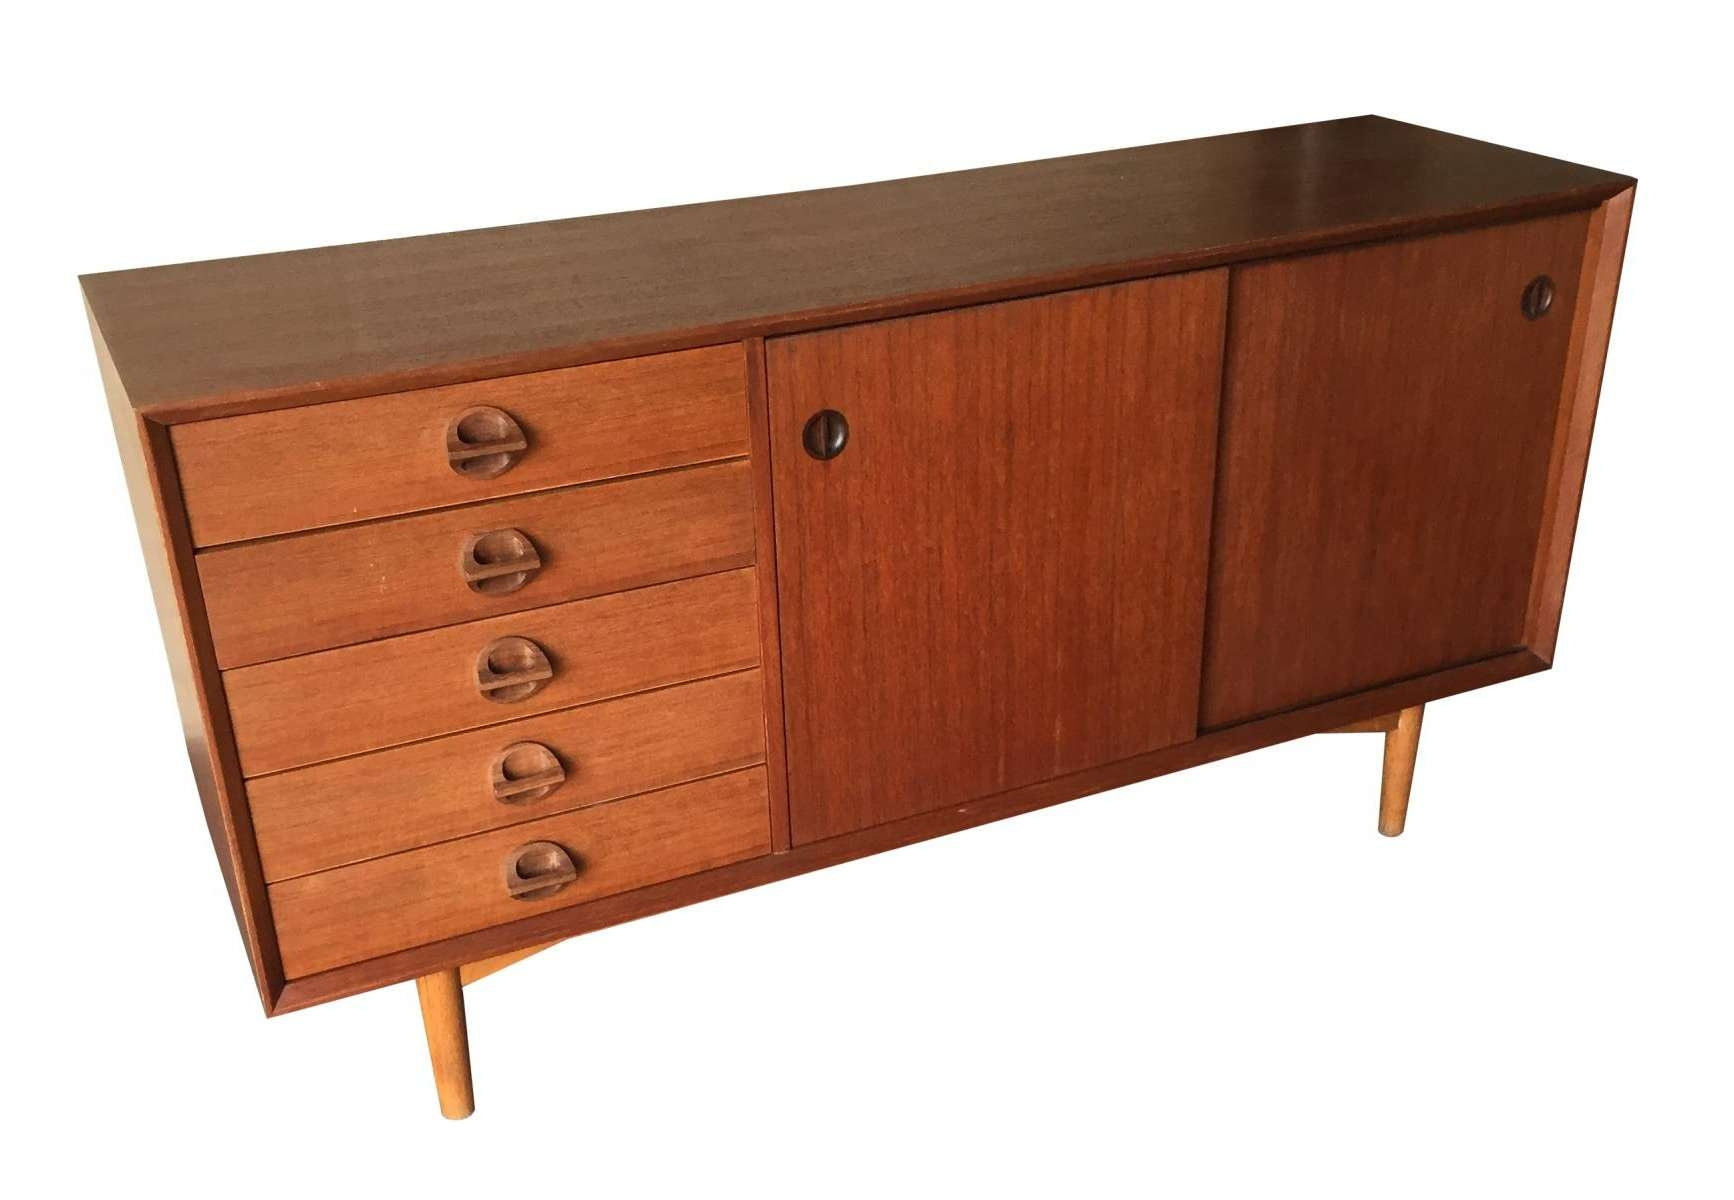 Vintage Sideboard With Sliding Doors, 1960S For Sale At Pamono With 50 Inch Sideboards (View 19 of 20)